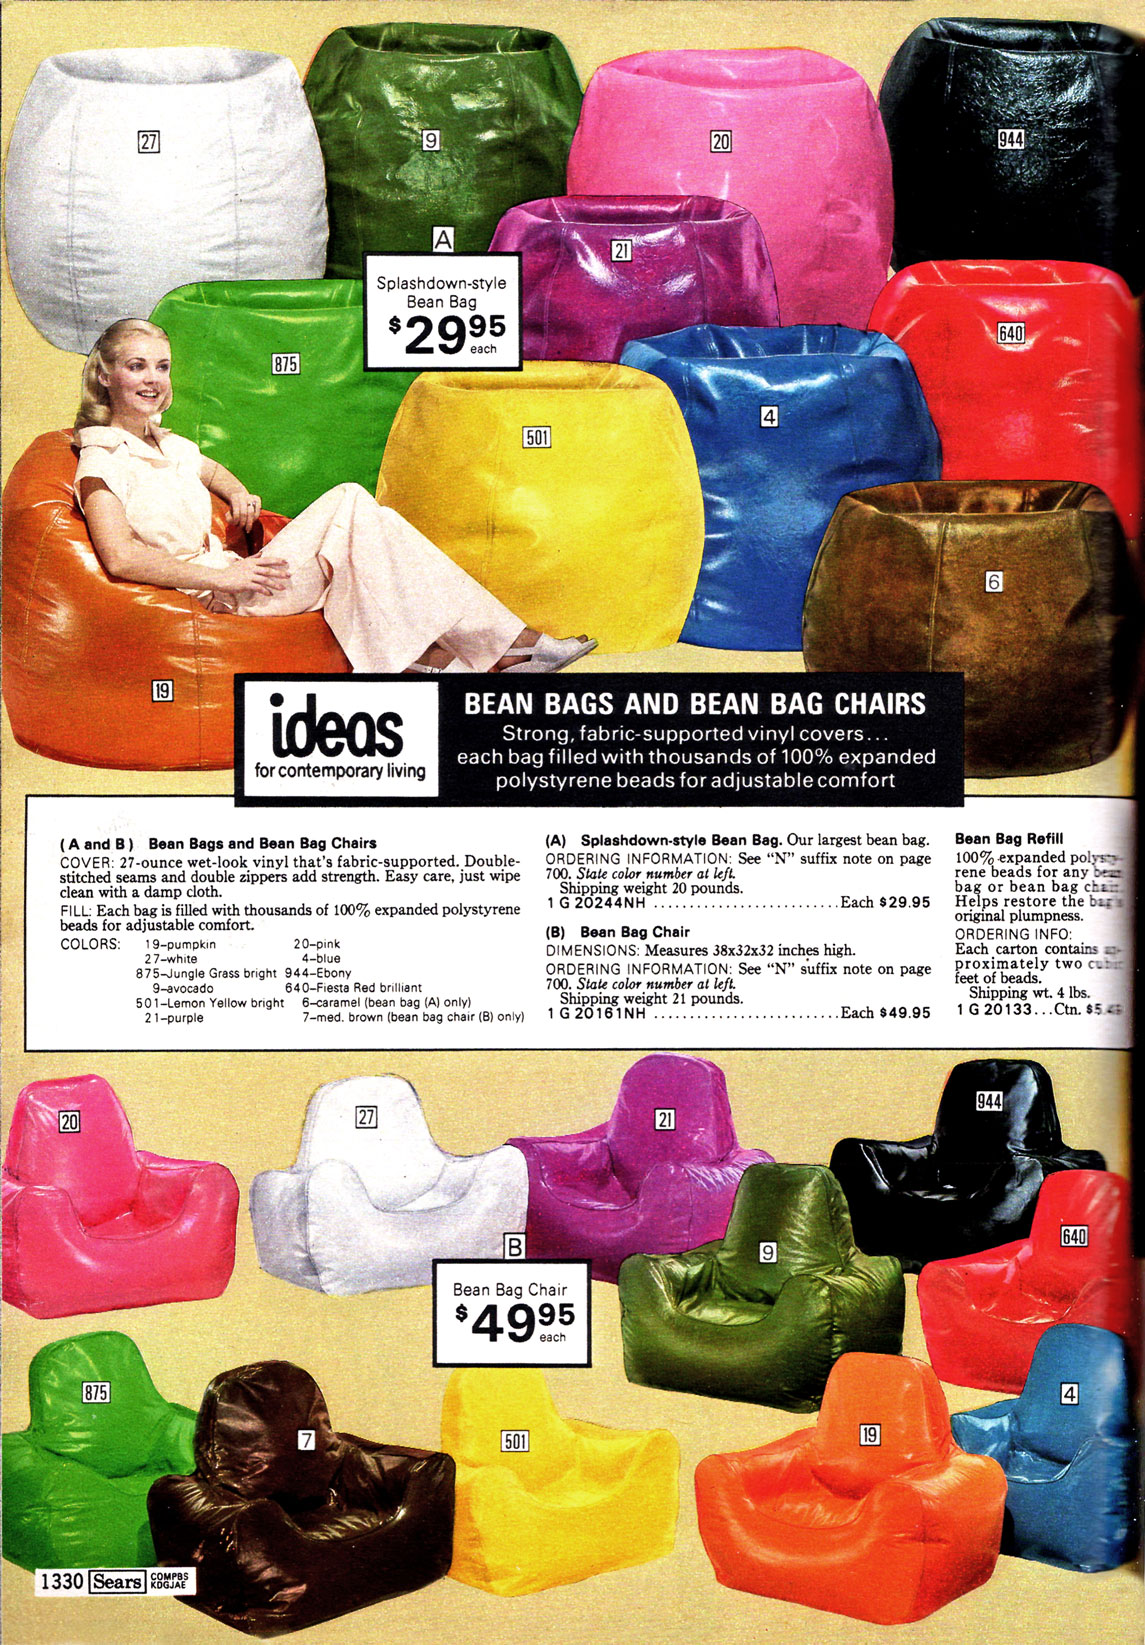 d0c9df4f4 Furniture that's Full of Beans - Sears, 1977 - The Catalog Blog